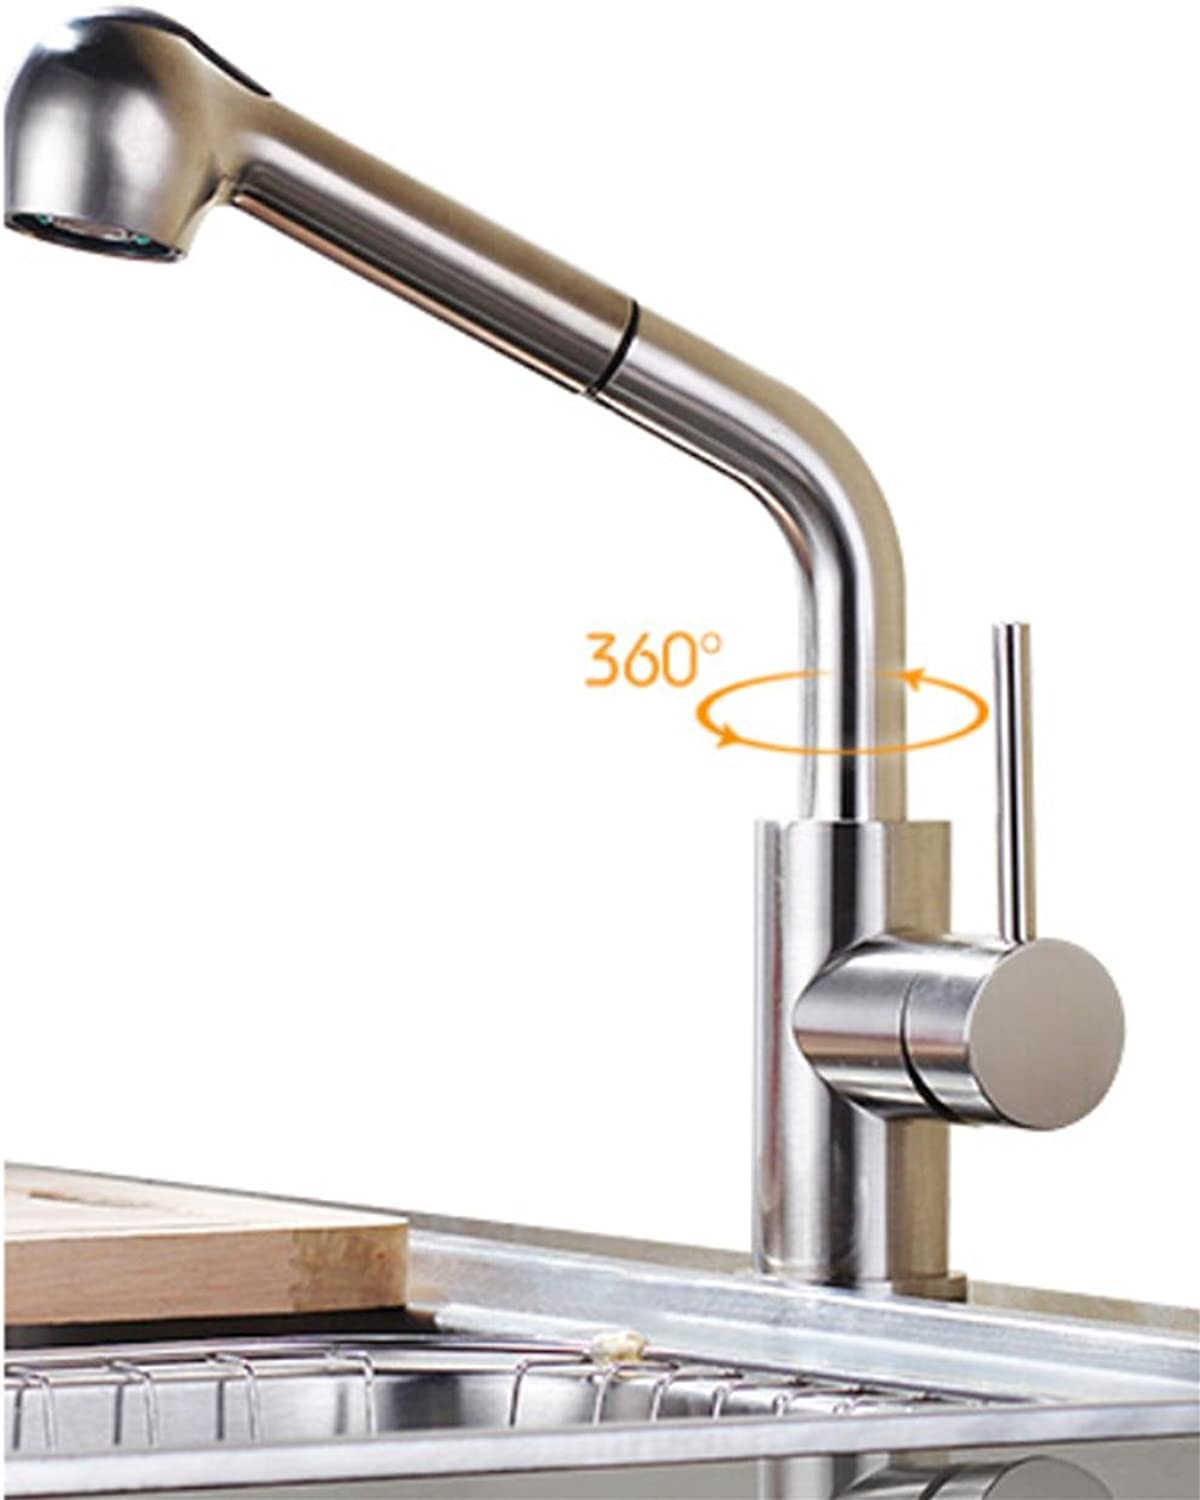 Hot and cold pull kitchen faucet full copper telescopic pull type redation, 1